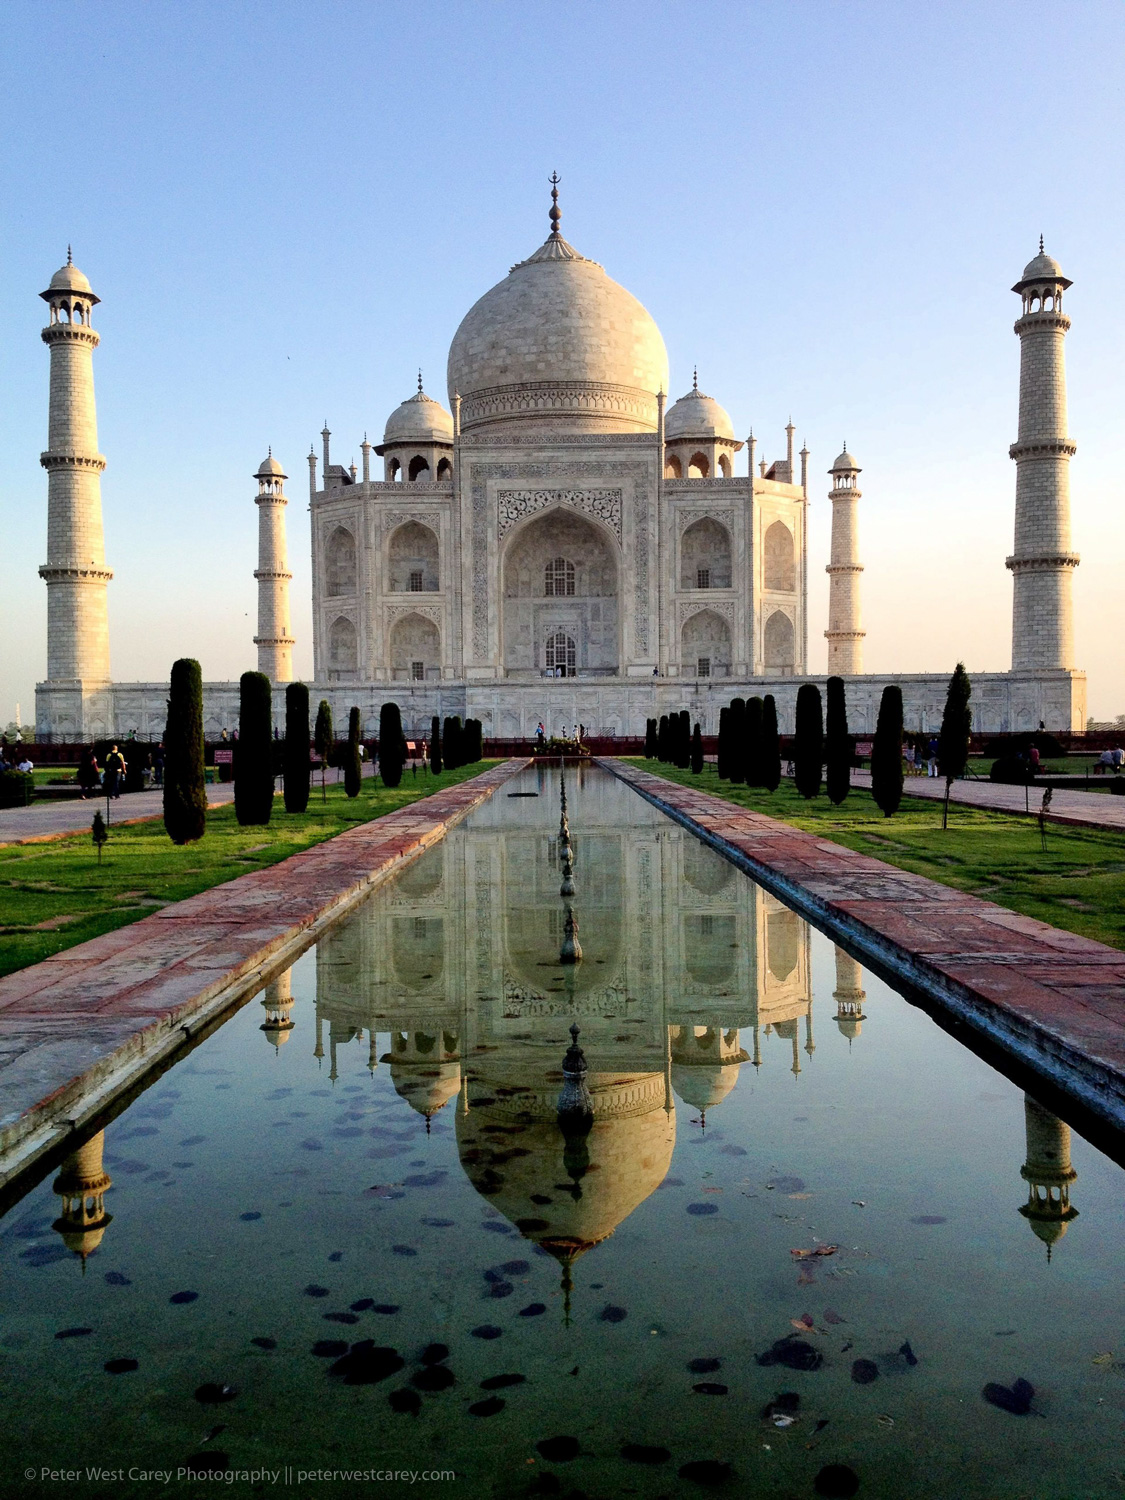 Photography Hot Spots - Taj Mahal